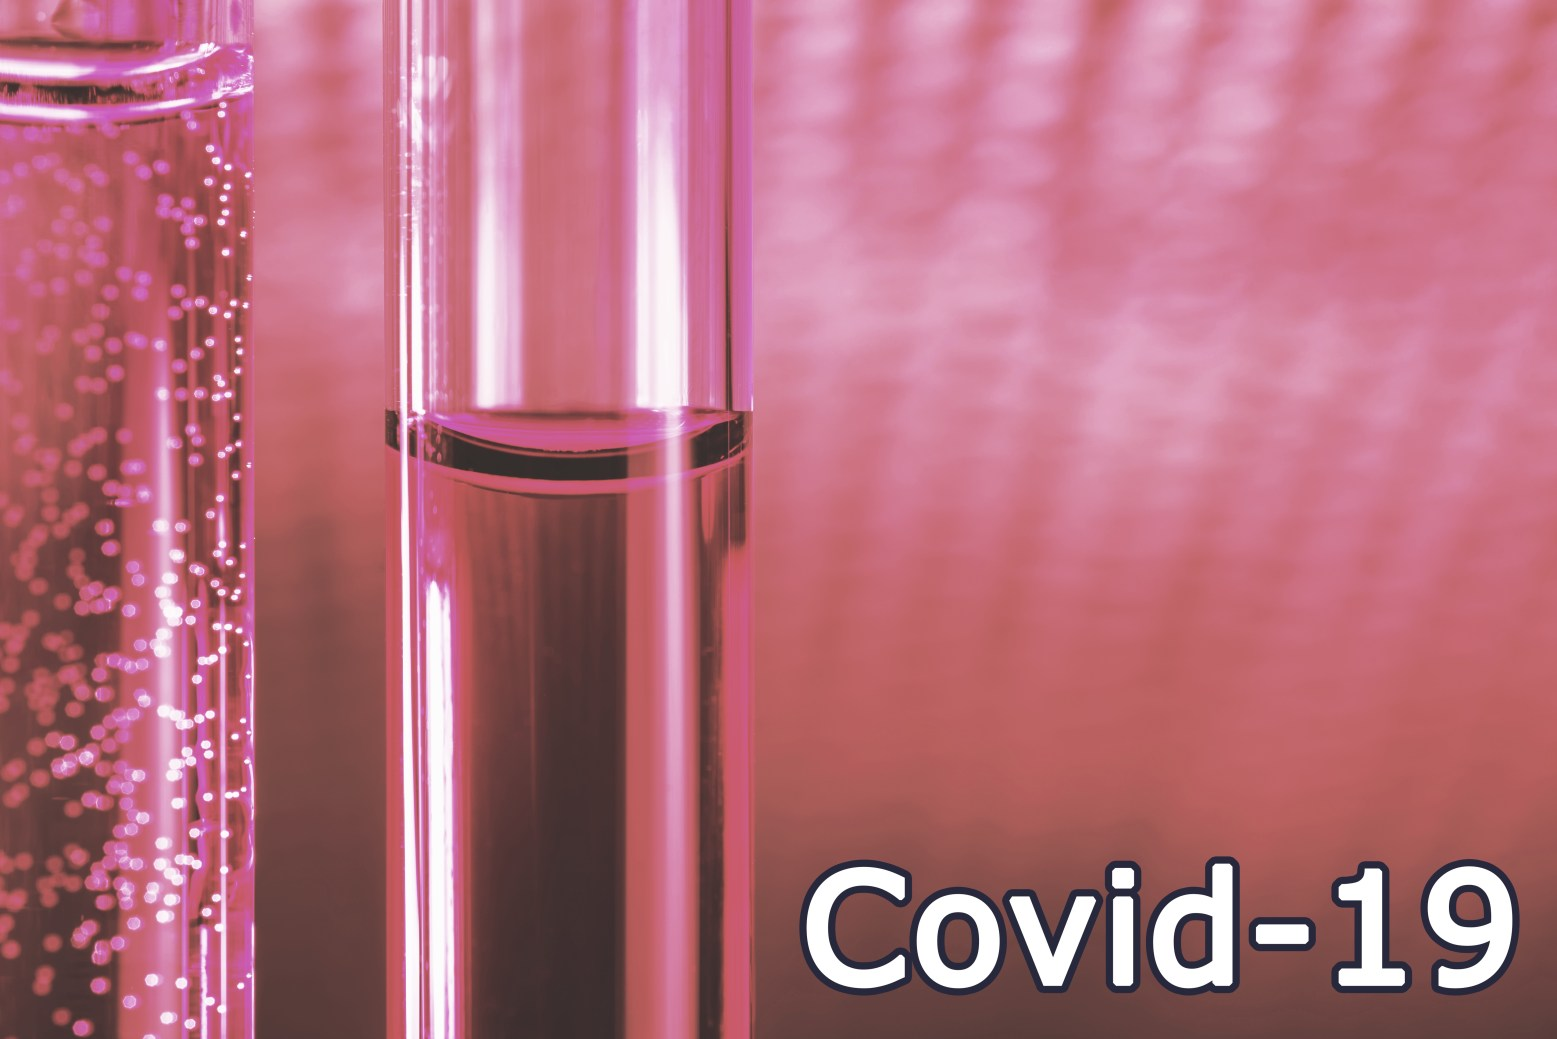 Covid-19. Red liquid vaccine in glass tubes.. Cases of COVID-19 illustration. Image credit: Ivan Uralsky. vaccine hesitancy concept. Also to illustrate article re: emergency use authorisation. Oxford/AstraZeneca vaccine. Also used in coverage of vaccine hoarding. Vaccination campaign concept. Cost of COVID-19 vaccine concept. vaccine shipments concept. Sputnik V illustration.